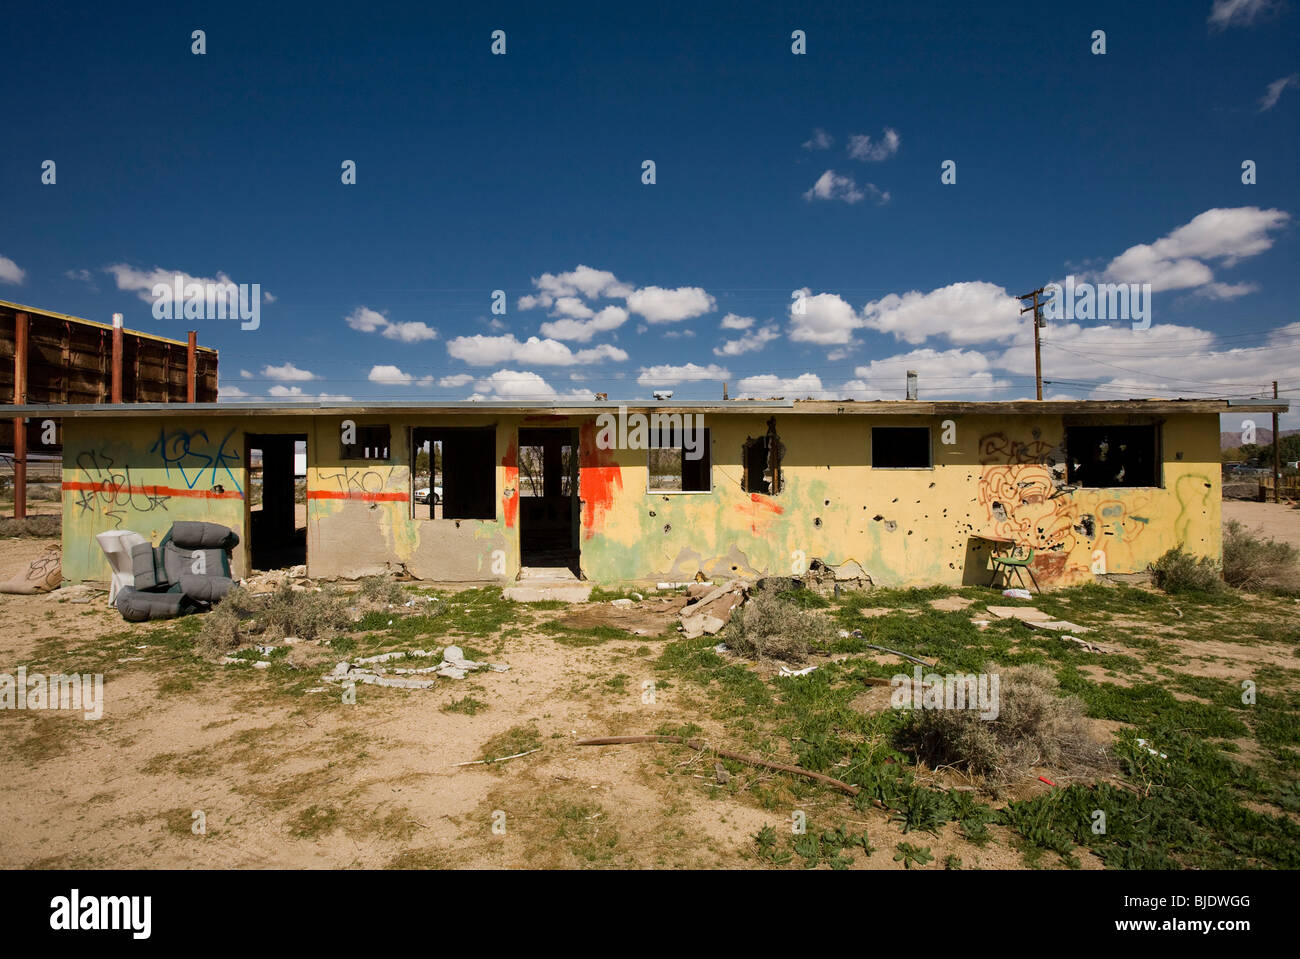 Abandoned Shack Yermo, California, United States of America - Stock Image